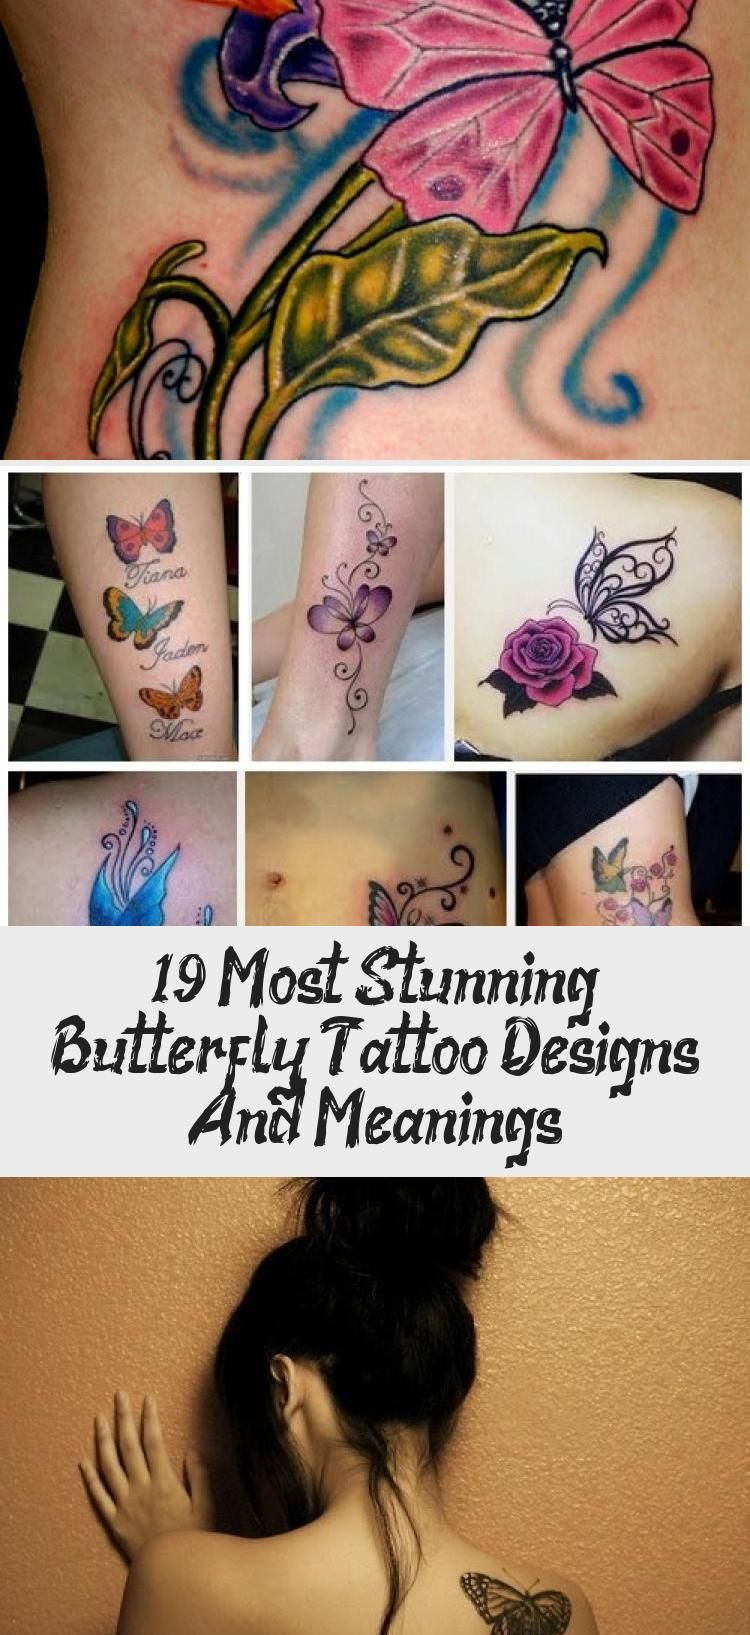 19 Most Stunning Butterfly Tattoo Designs And Meanings Design In 2020 Butterfly Tattoo Tattoos Tattoo Designs And Meanings